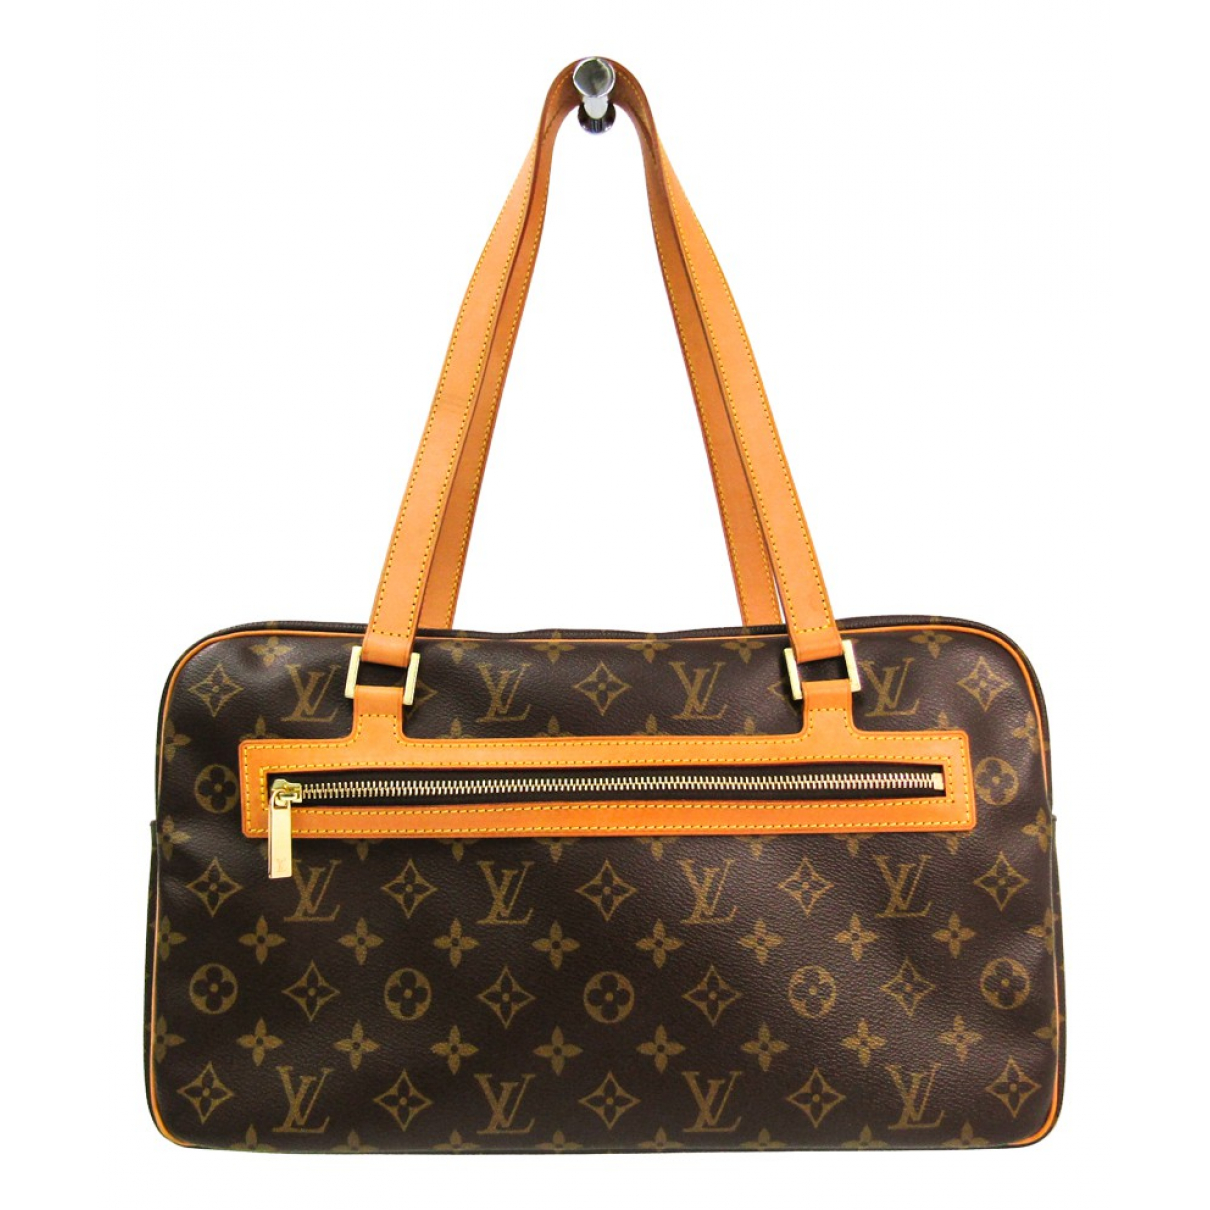 Bolso  Cite  de Lona Louis Vuitton